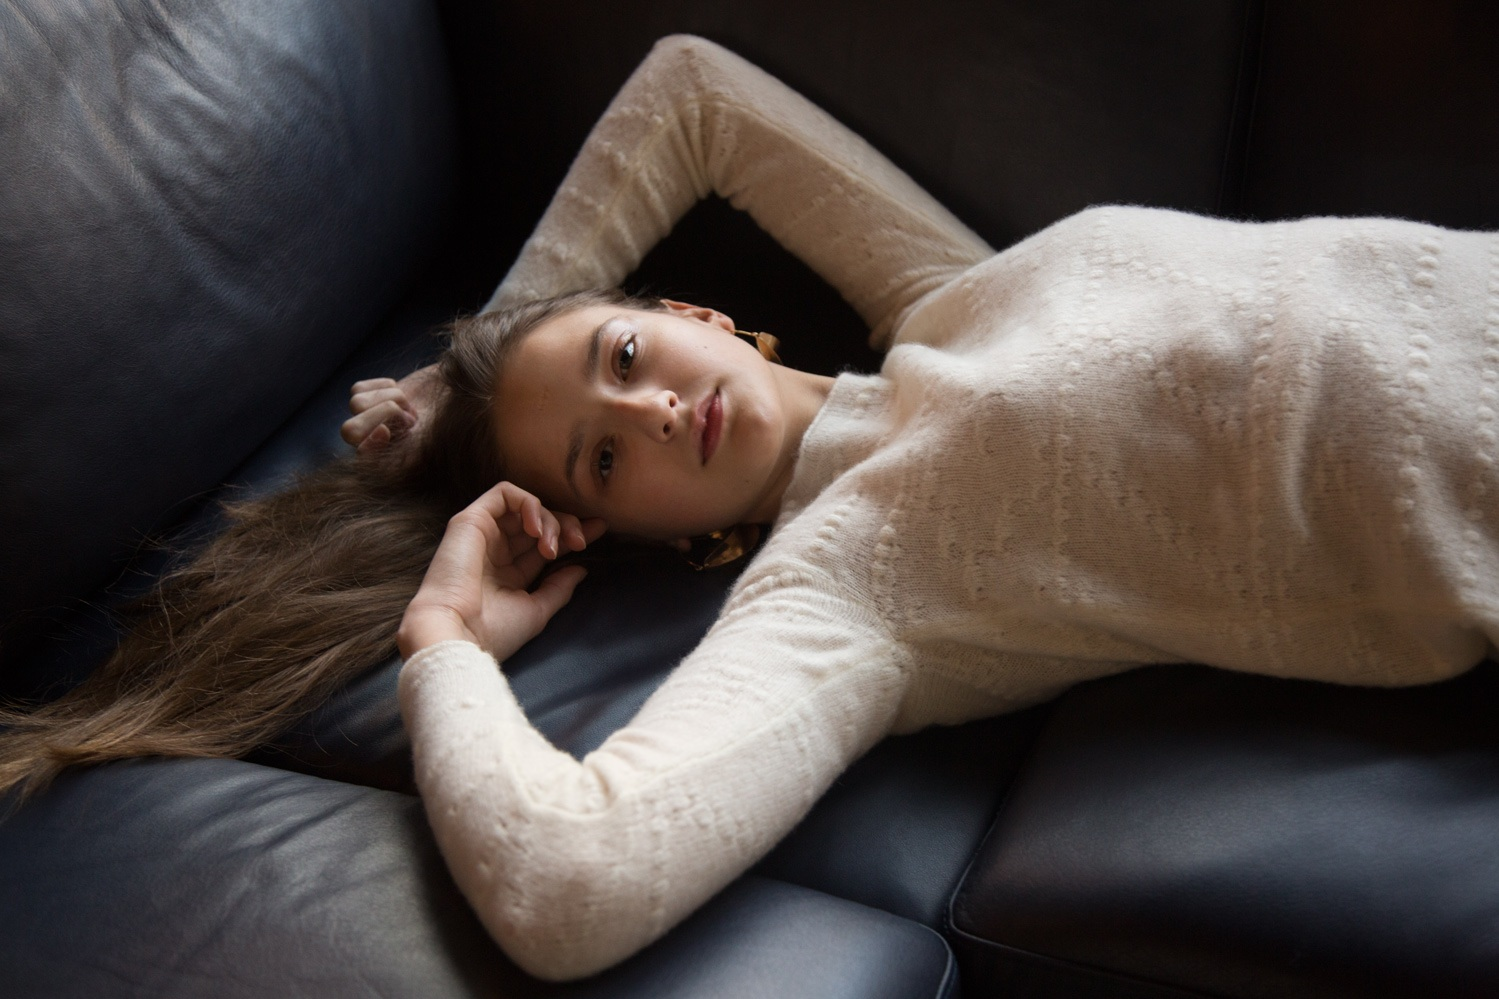 Ivory cashmere sweater